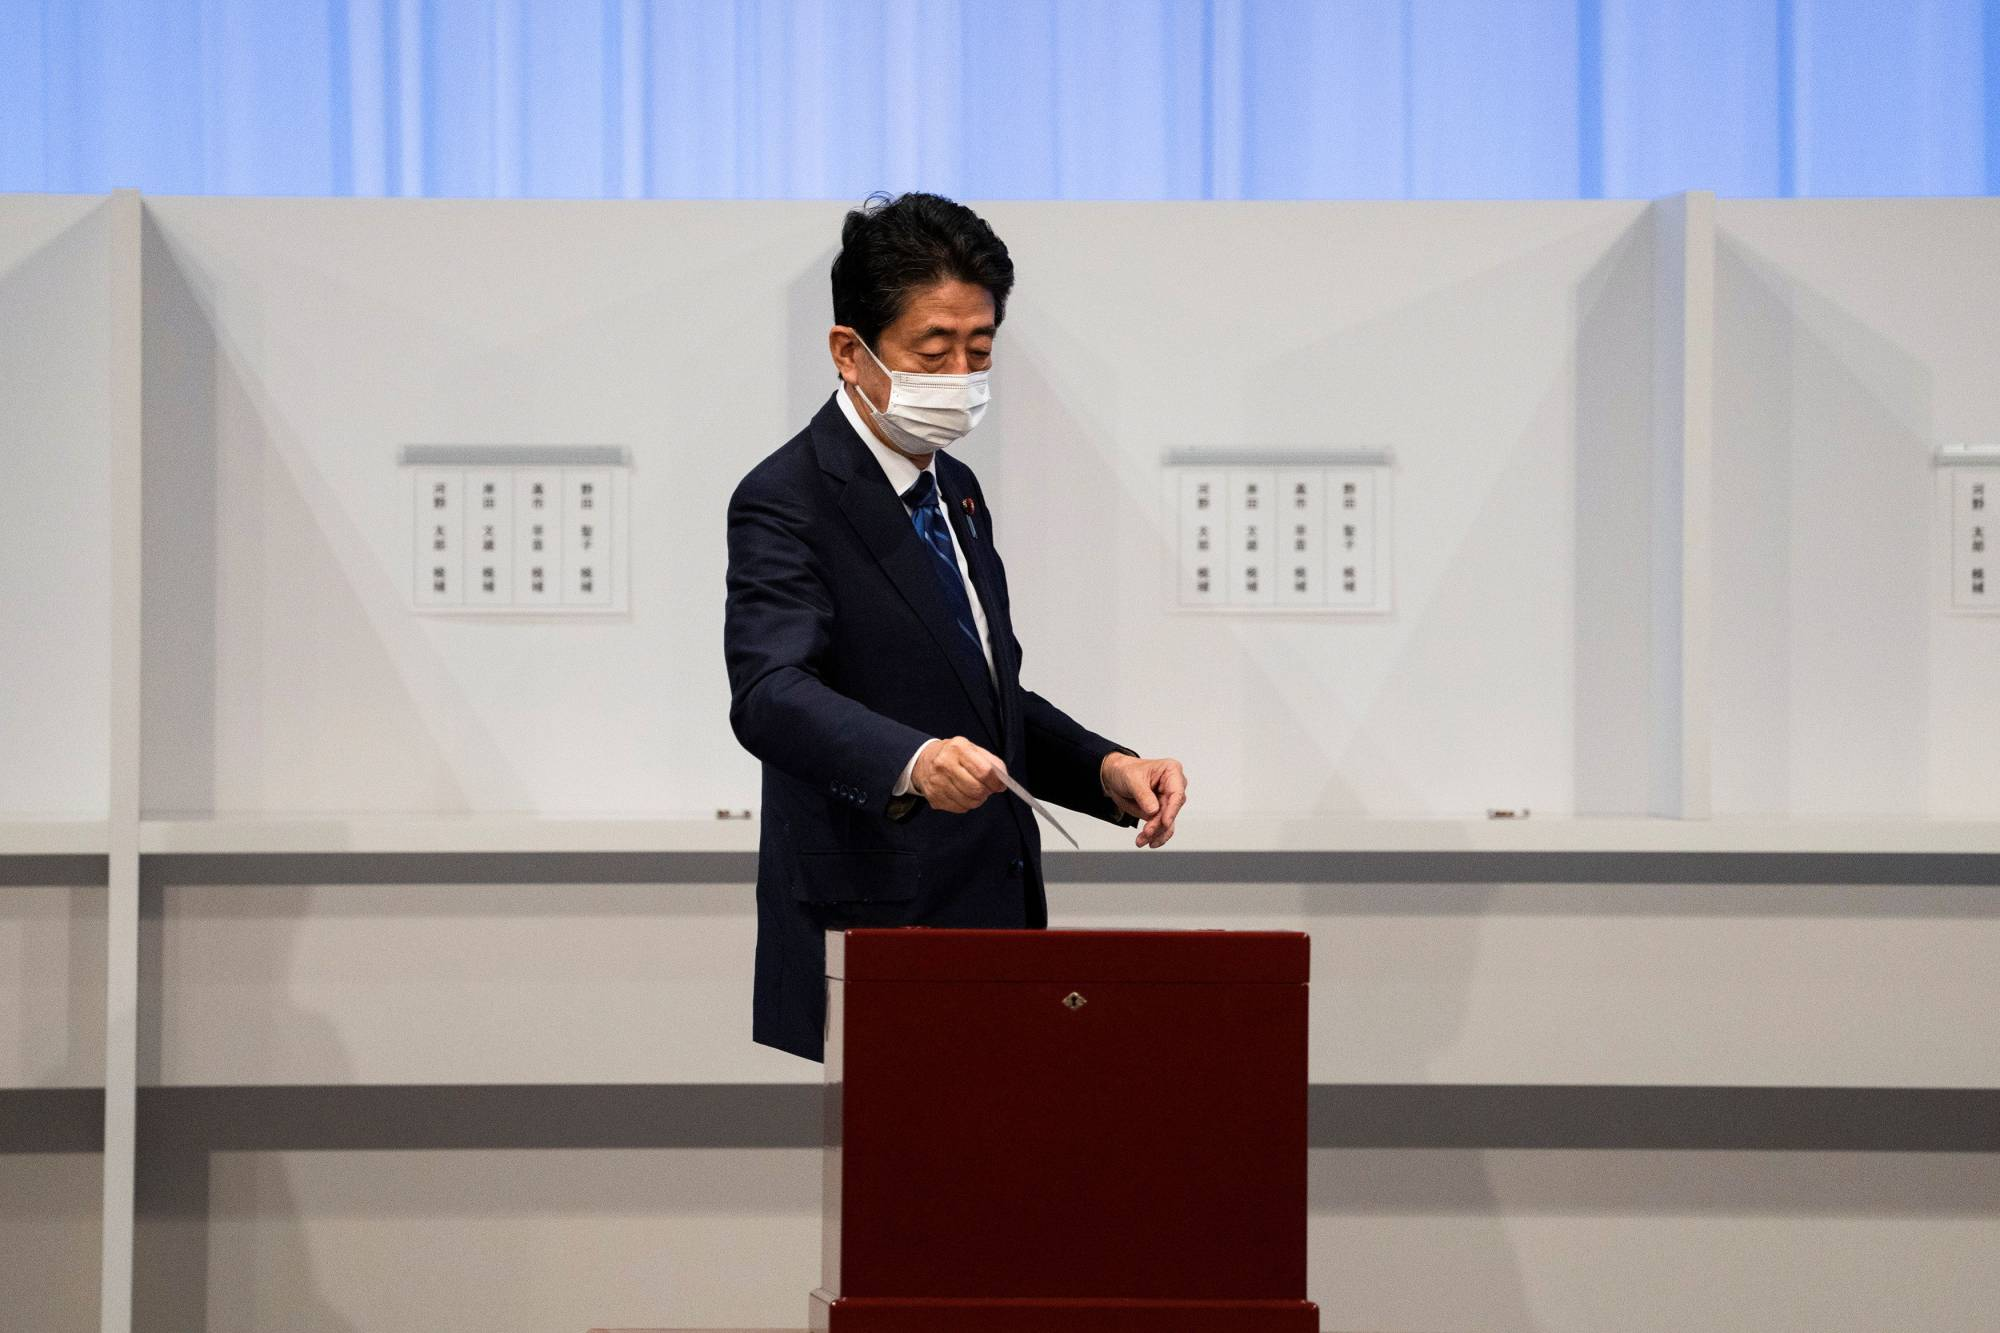 Former Prime Minister Shinzo Abe casts his vote in the Liberal Democratic Party's leadership election in Tokyo on Wednesday. | POOL / VIA REUTERS